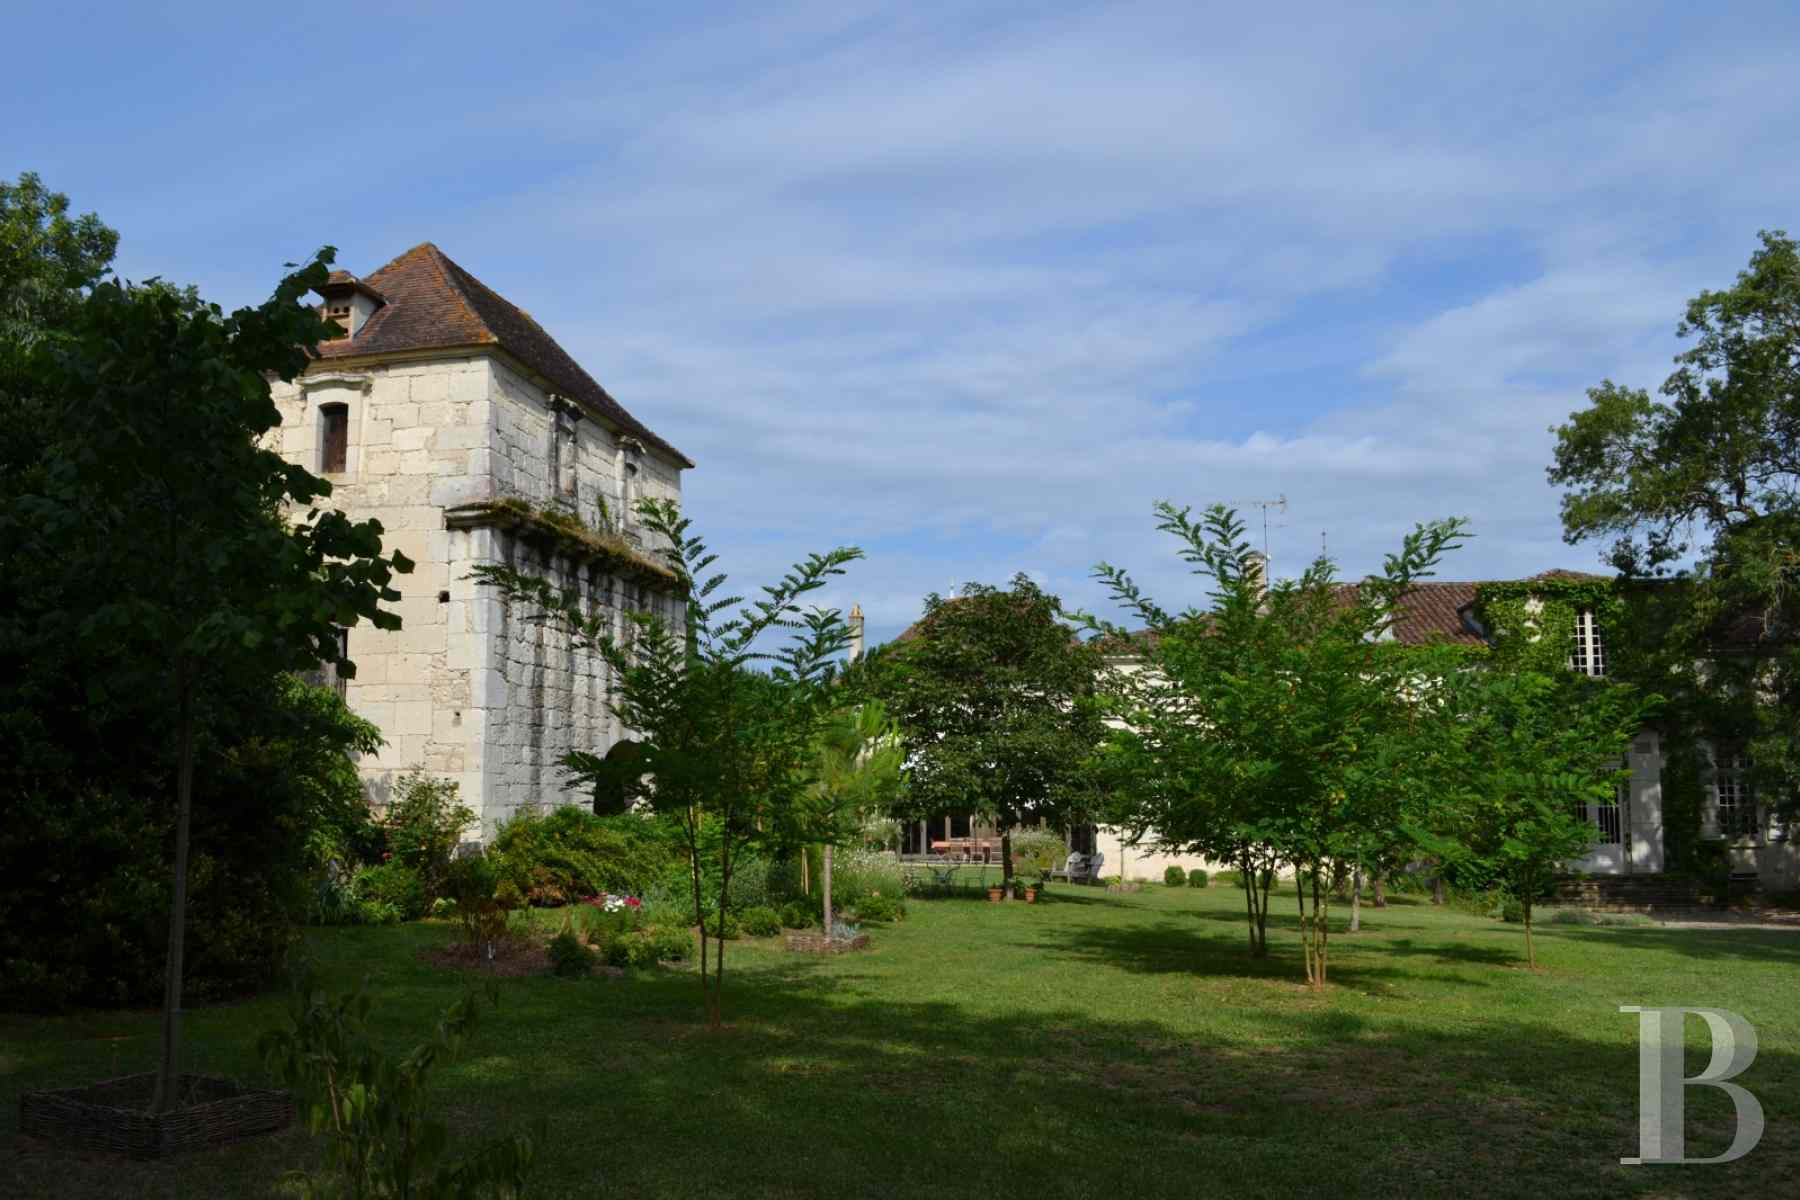 property for sale France aquitaine property 18th - 8 zoom